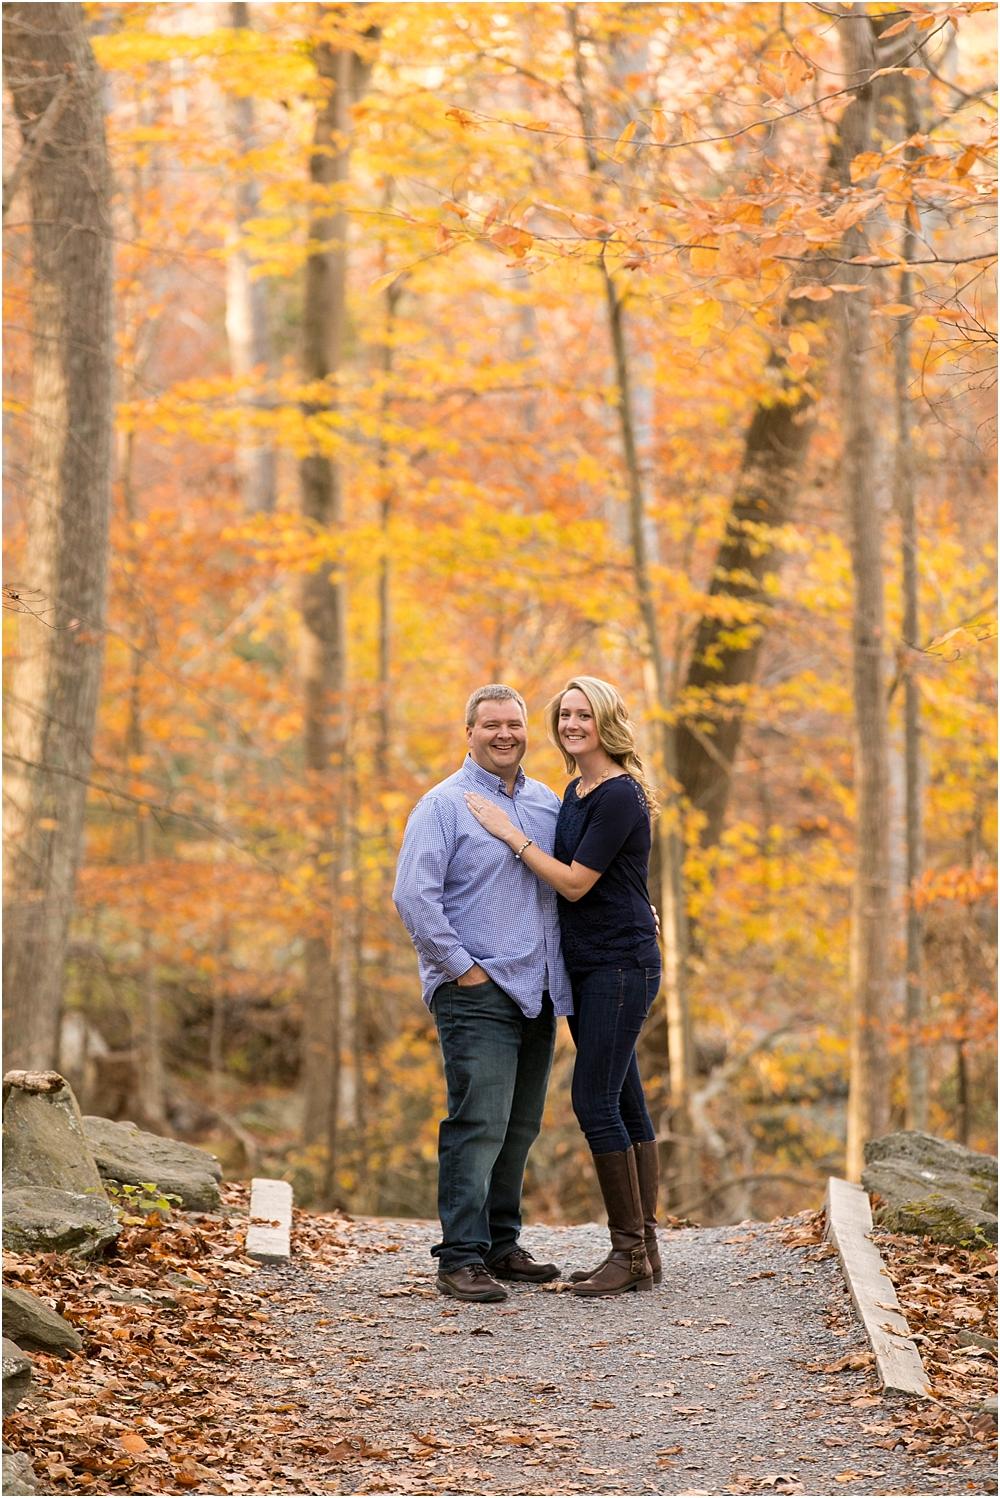 meredith joey cunningham falls engagement session living radiant photography photos_0004.jpg